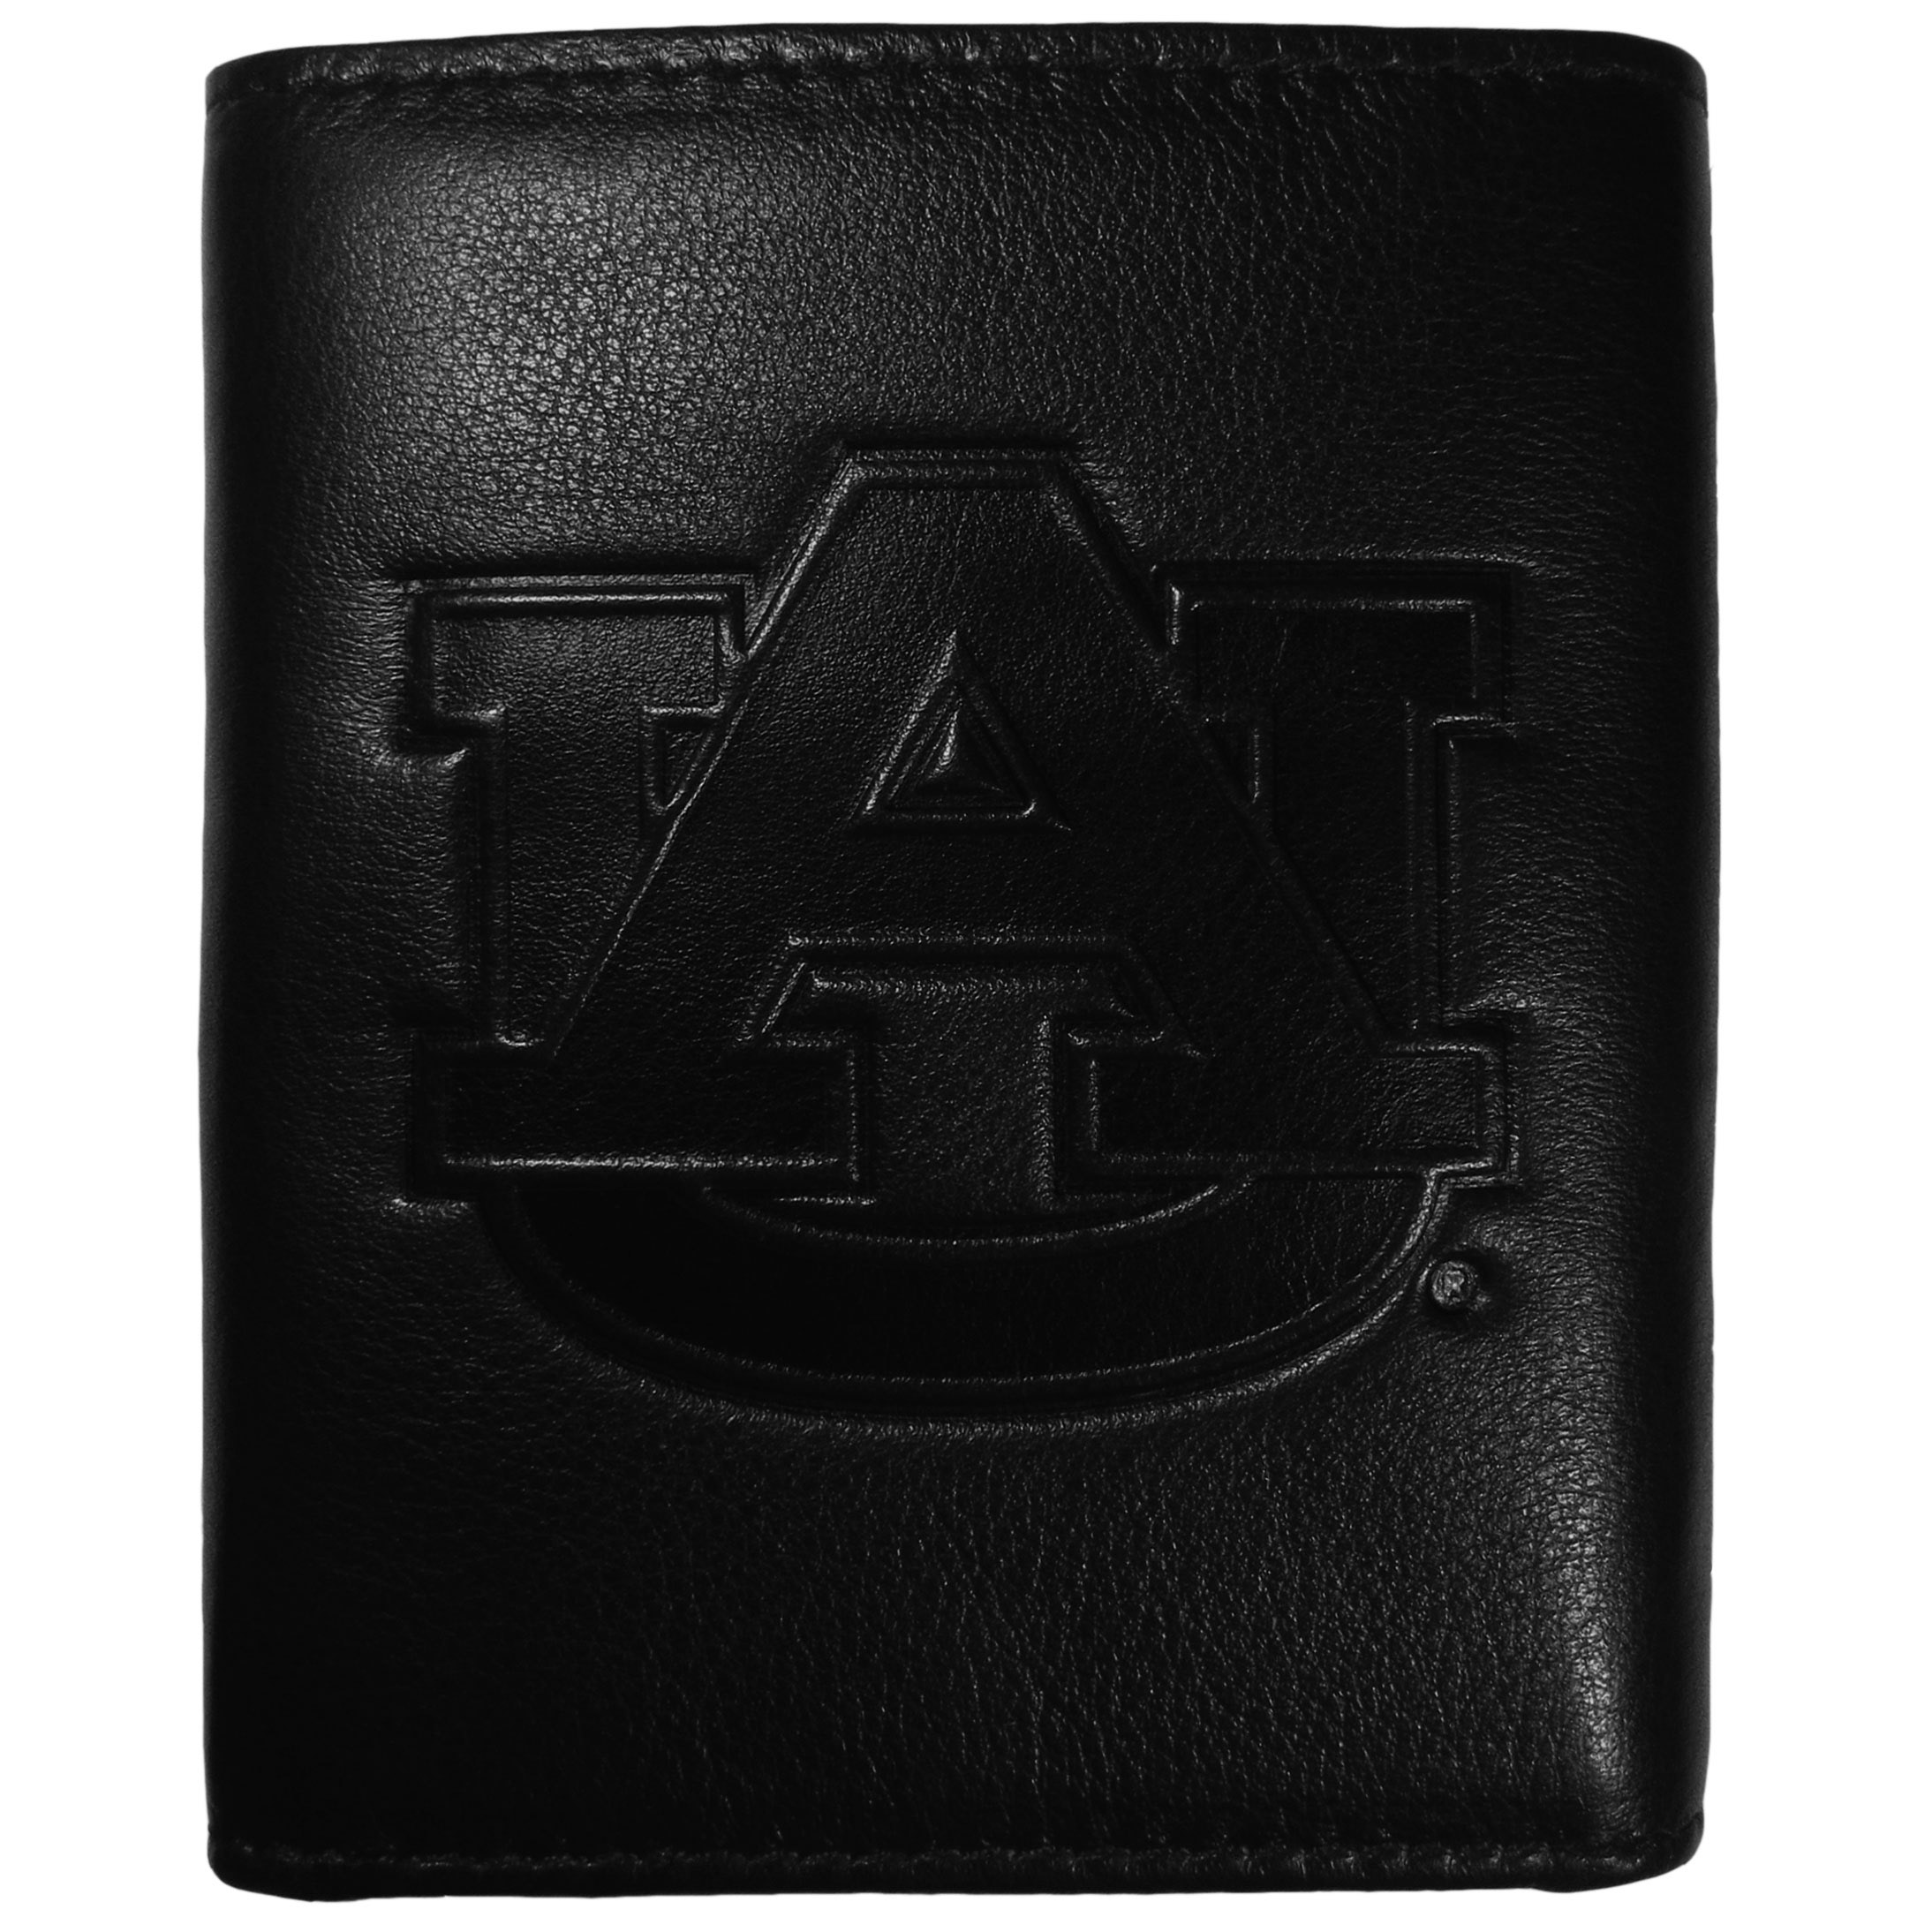 Auburn Tigers Embossed Leather Tri-fold Wallet - This stylish leather wallet is made of high quality leather with a supple feel and classic look. The front of the tri-fold style wallet has a deeply embossed Auburn Tigers logo. The billfold is packed with features that will allow to keep organized, lots of credit card slots, windowed ID slot, large pockets for bills and a removable sleeve with extra slots for even more storage. This is a must-have men's fashion accessory that would make any fan very proud to own.